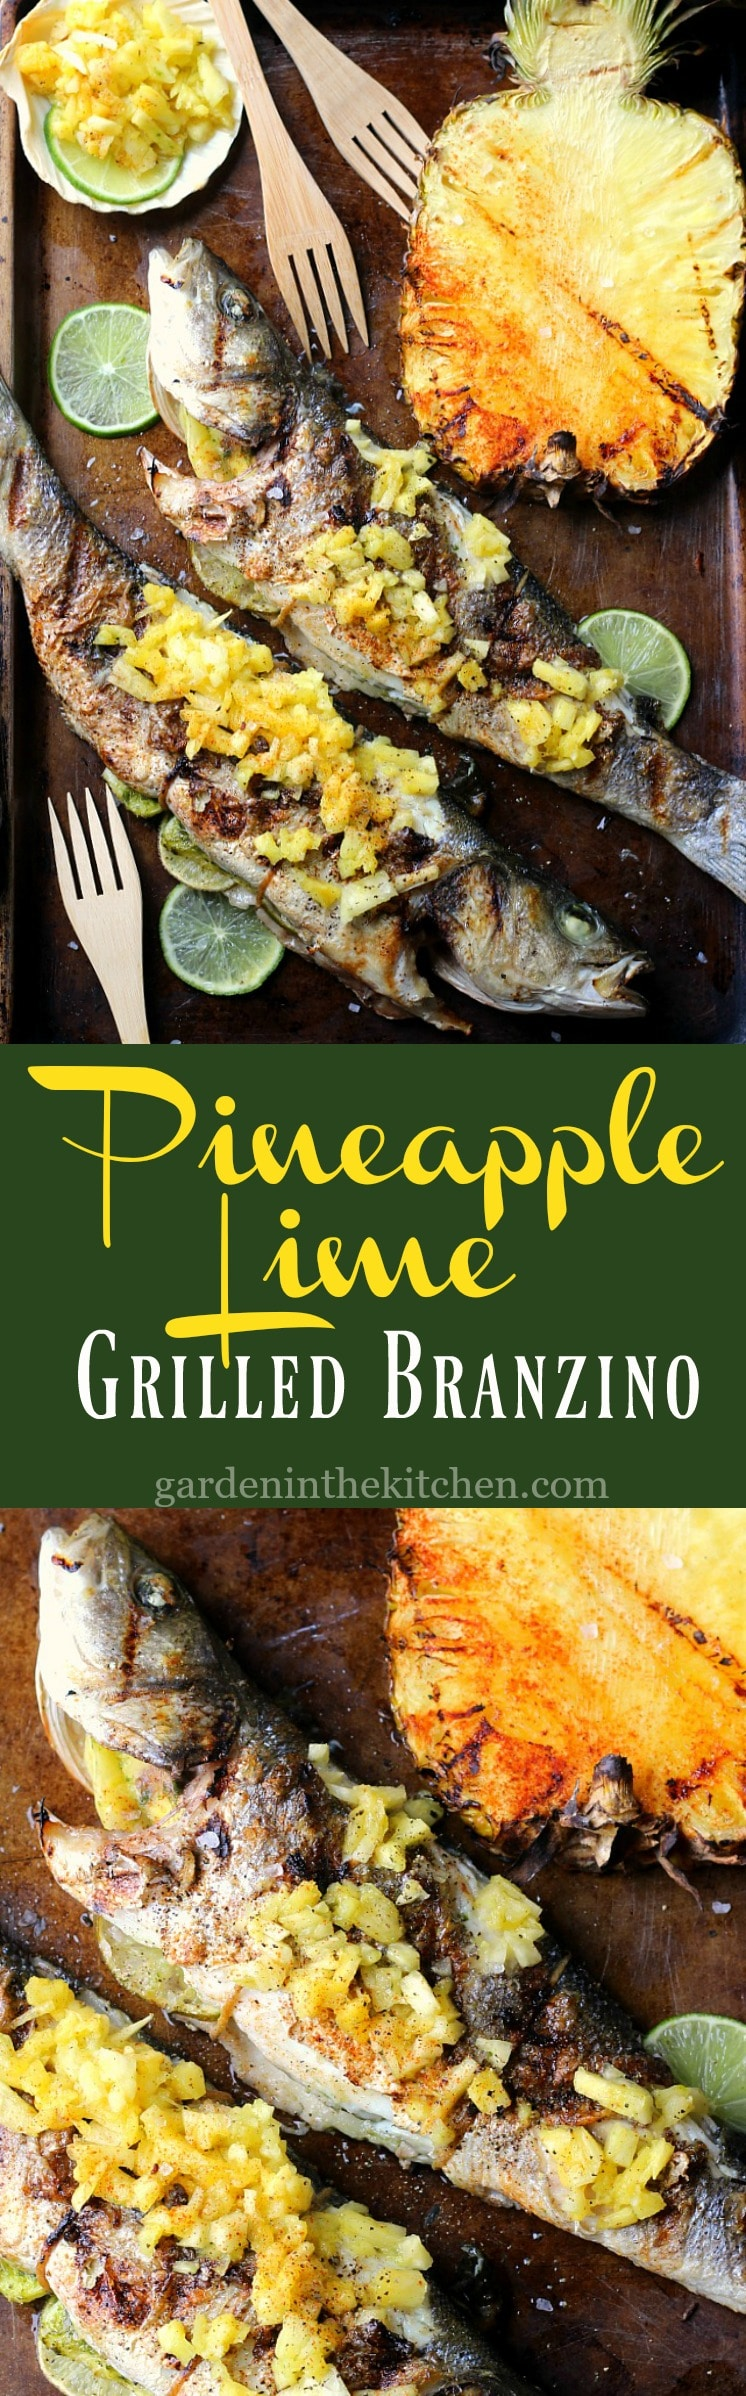 Pineapple Lime Grilled Branzino